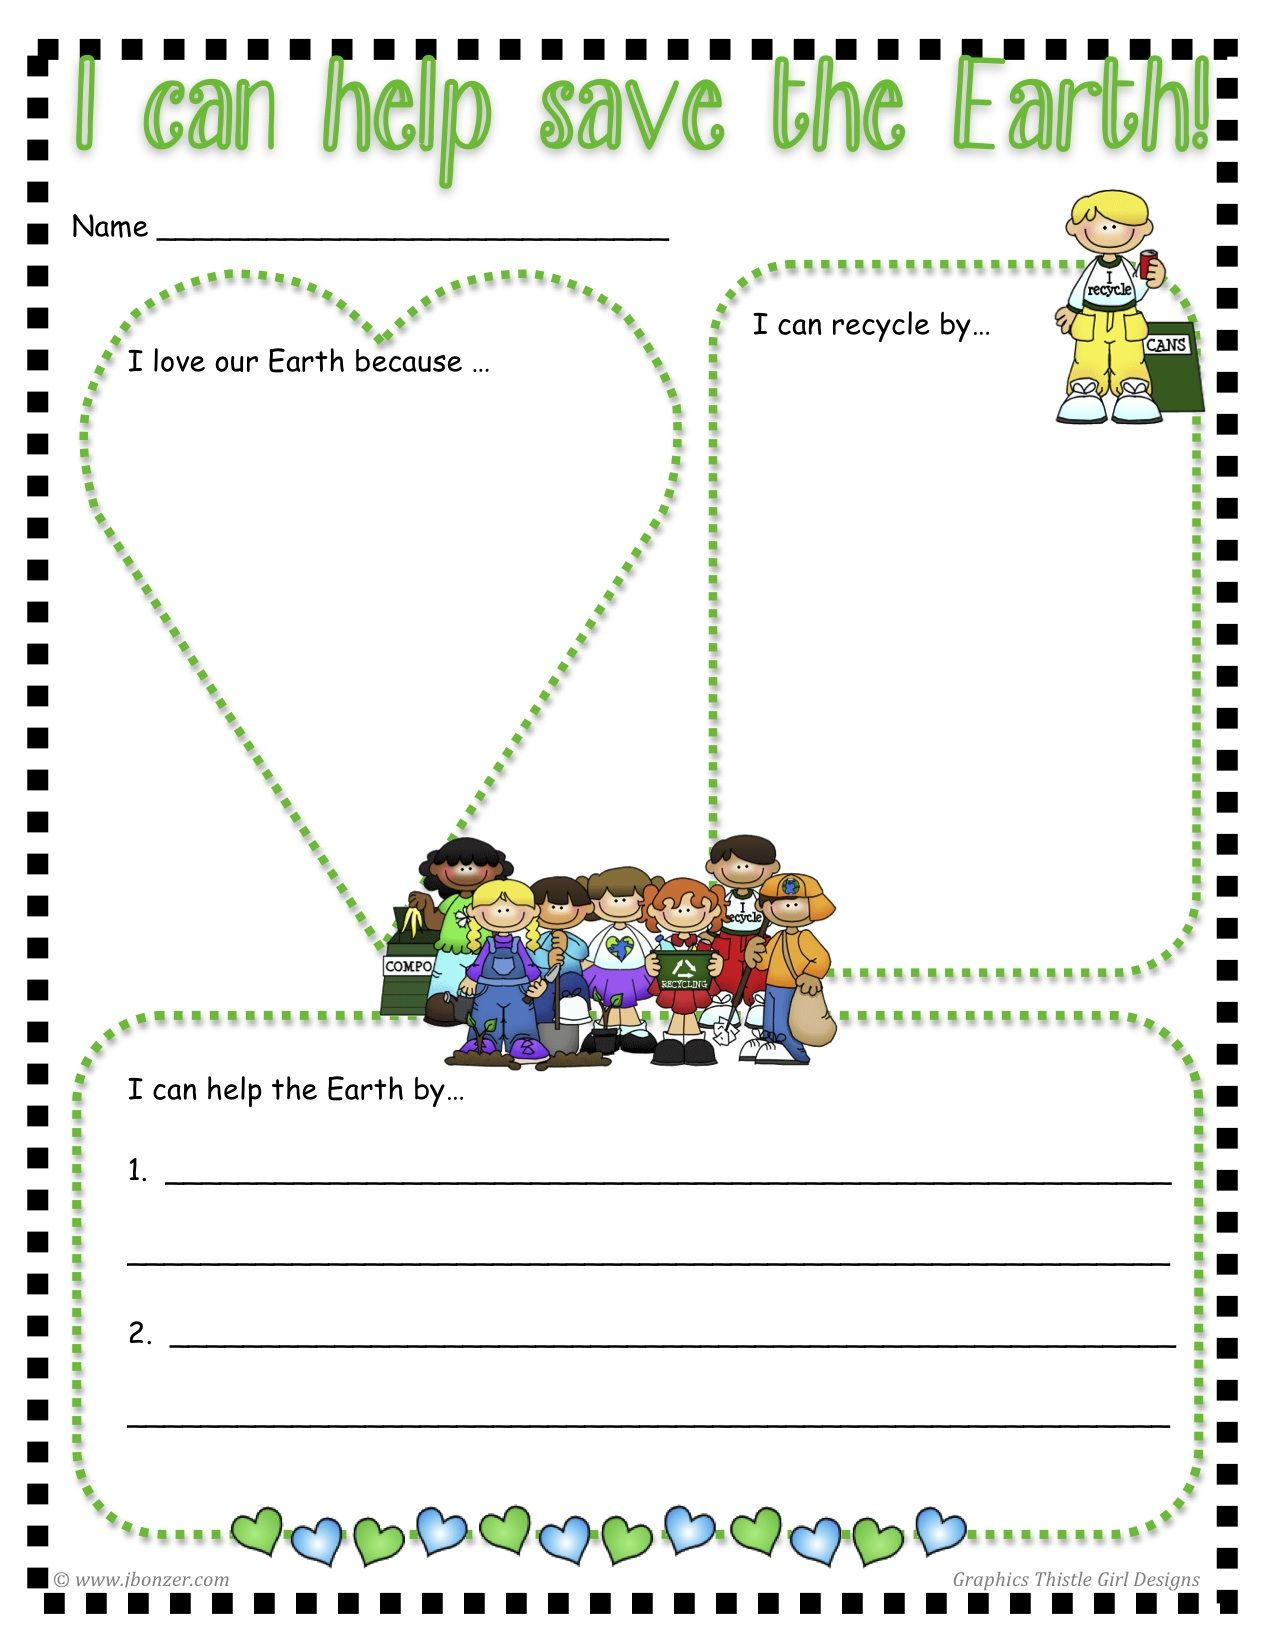 Free I Can Help Save The Earth Printable